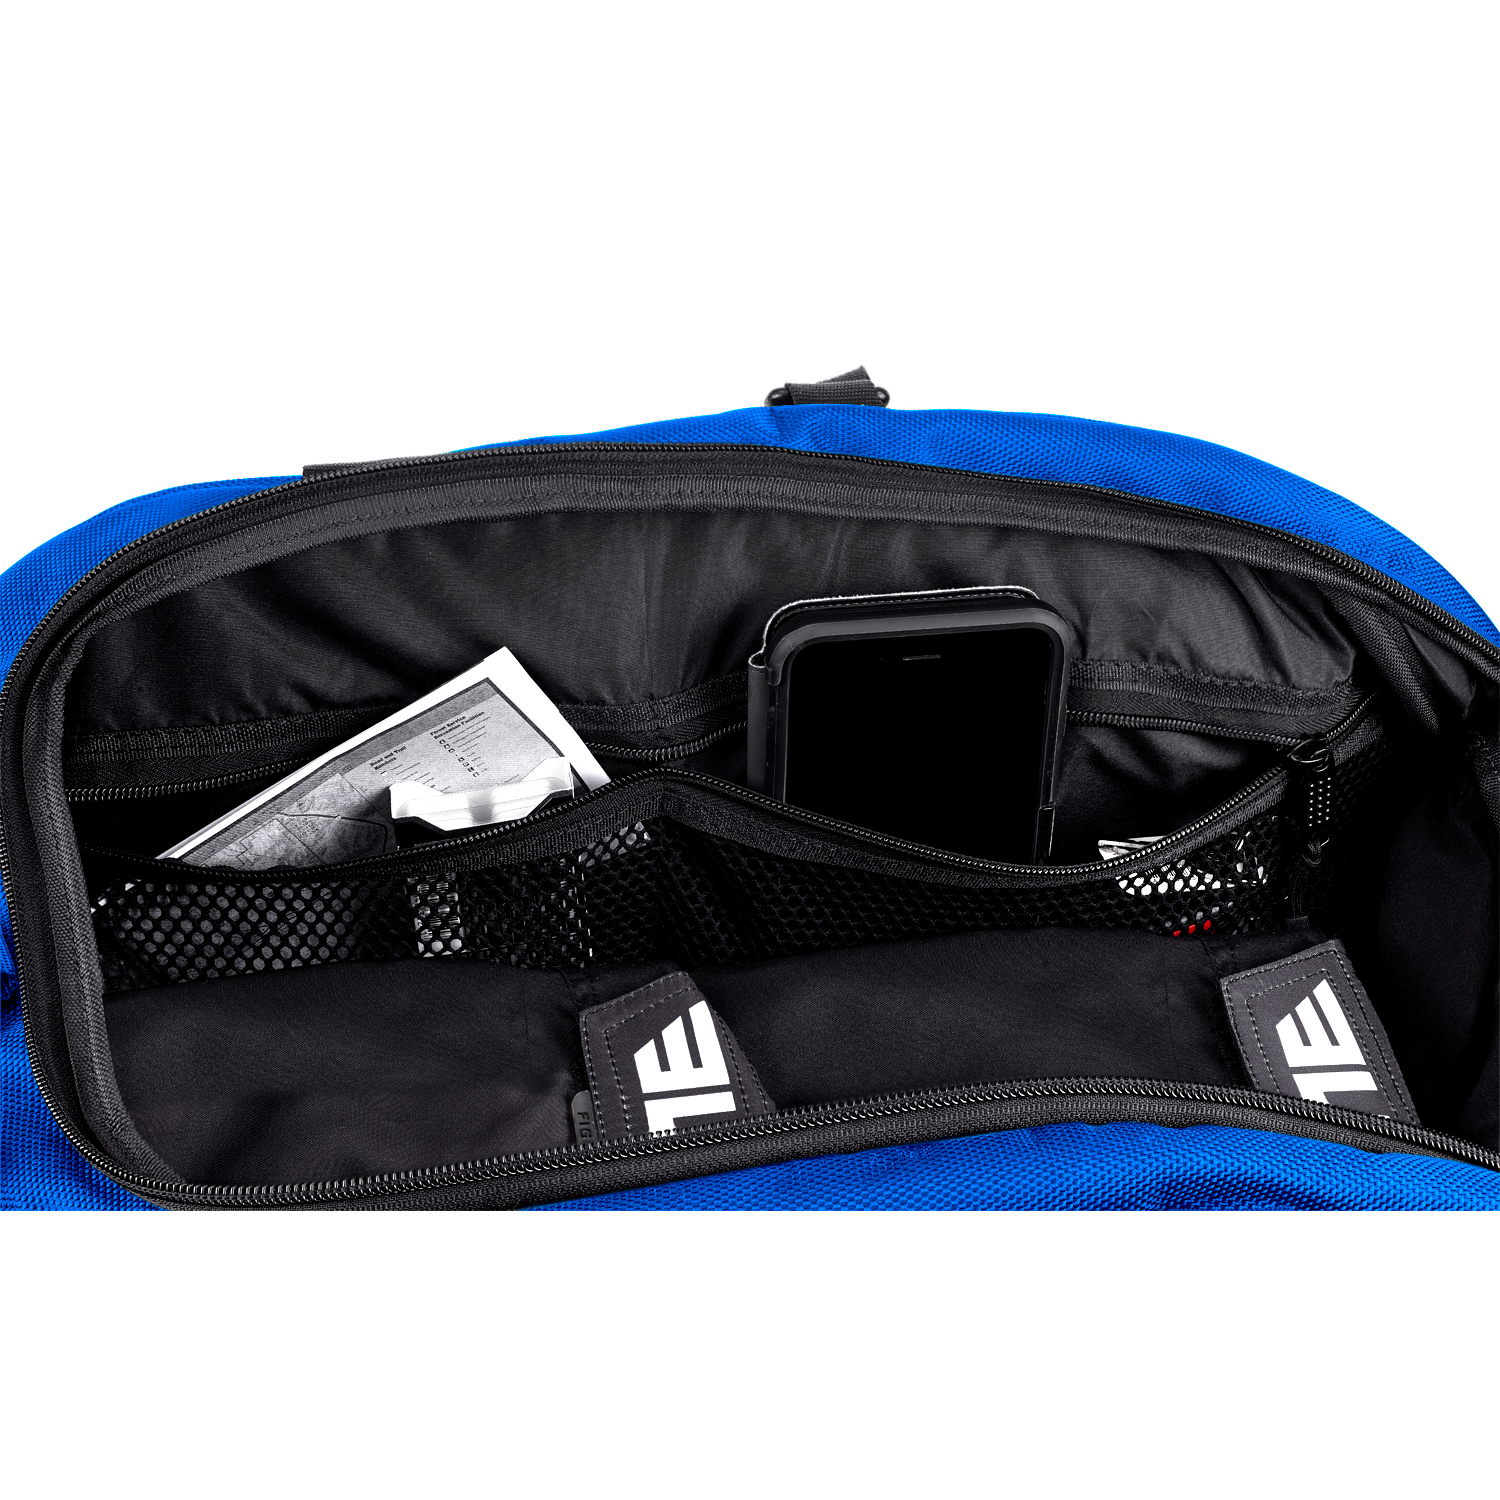 Load image into Gallery viewer, Elite Sports Warrior Series Blue Medium Duffel Karate Gear Gym Bag & Backpack